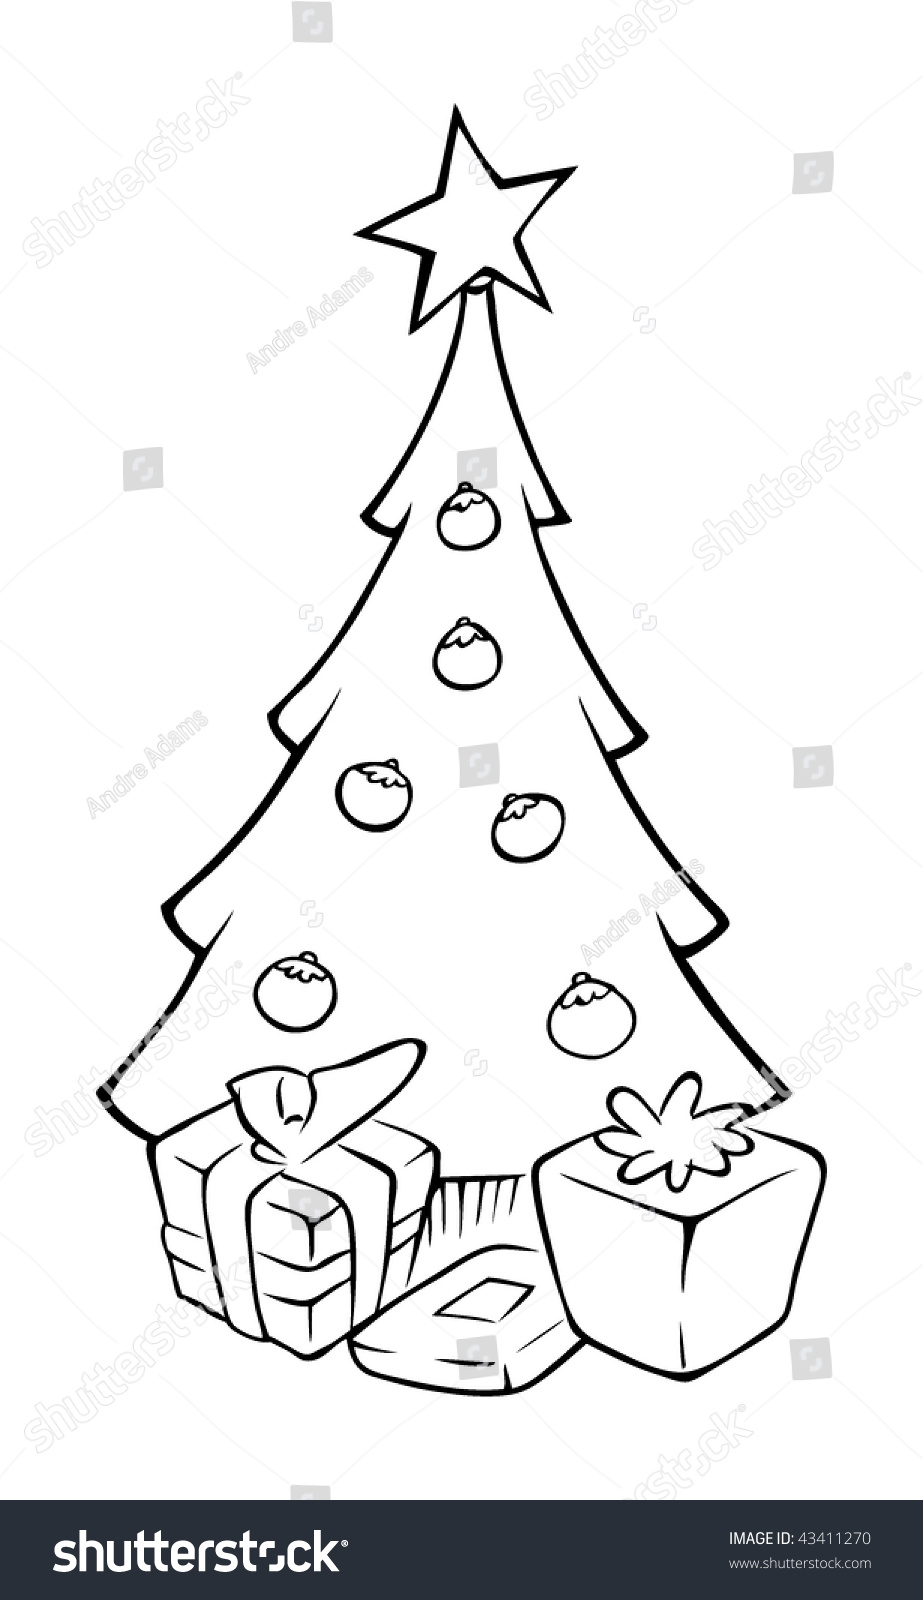 Cartoon Outline Vector Illustration Christmas Tree Stock